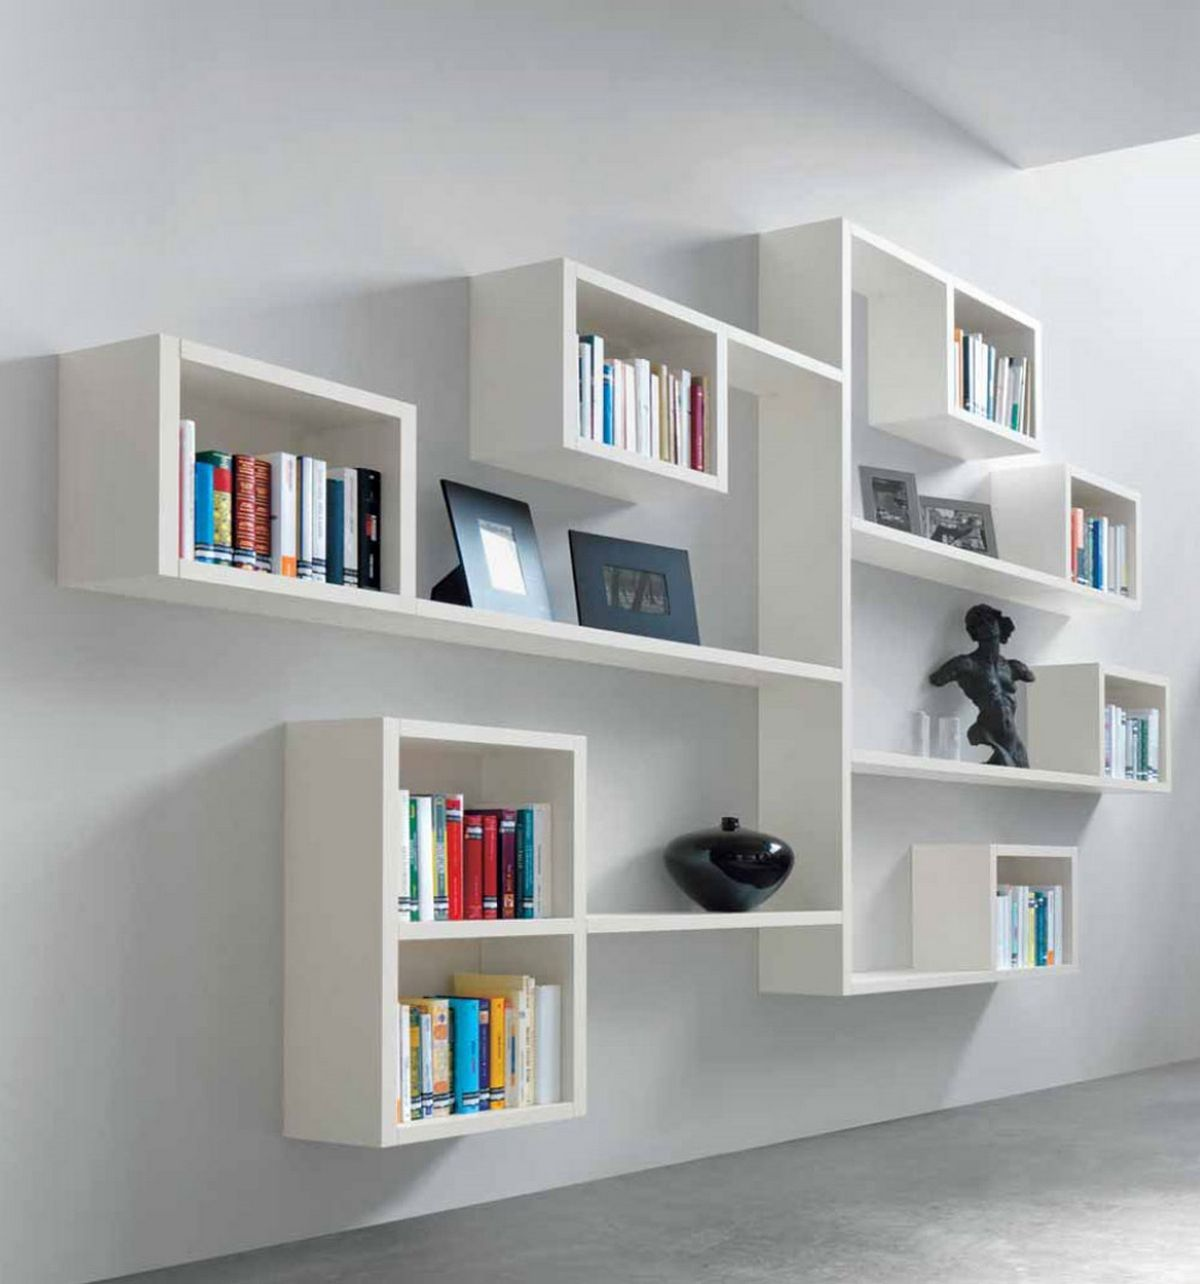 lago linea modular wall shelving minimalist book shelf  home  - modern wall mounted bookshelves terrific moodern bookshelf ideas modularwall shelving minimalist bookshelf creative shelf designs interiorfurniture